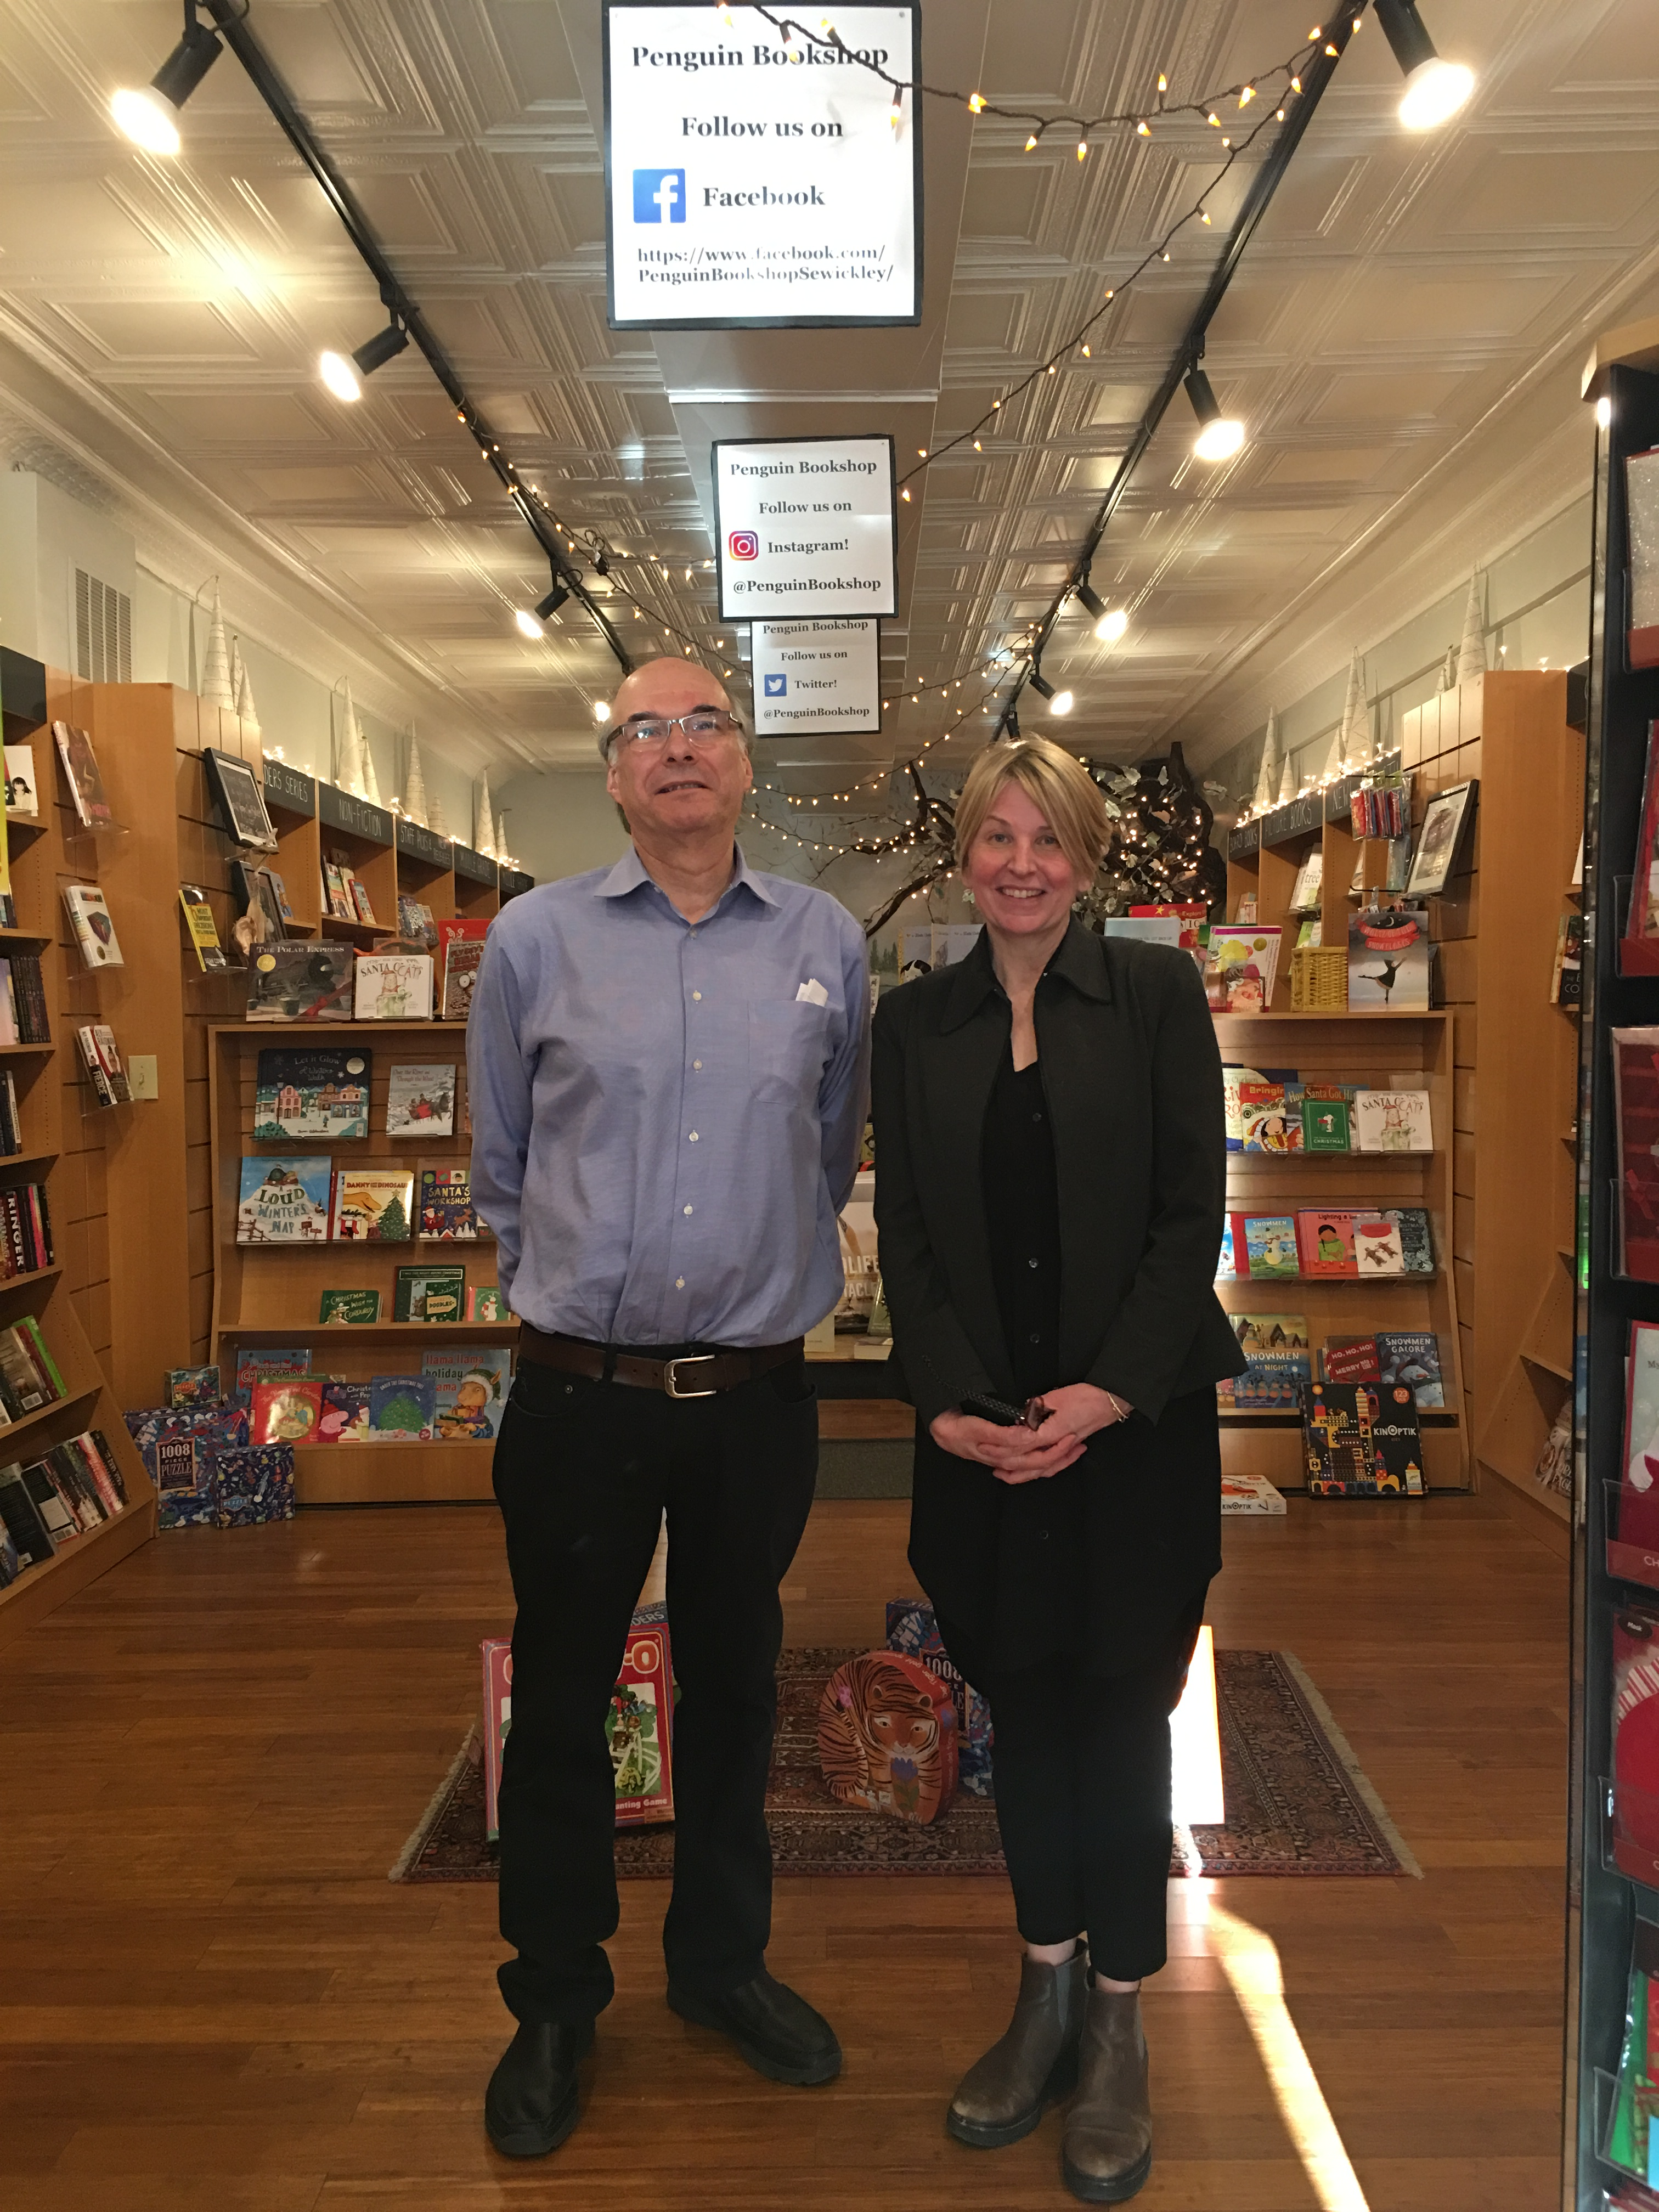 Teicher also visited the Penguin Bookshop in Sewickley, Pennsylvania, owned by Susan Hans O'Connor.